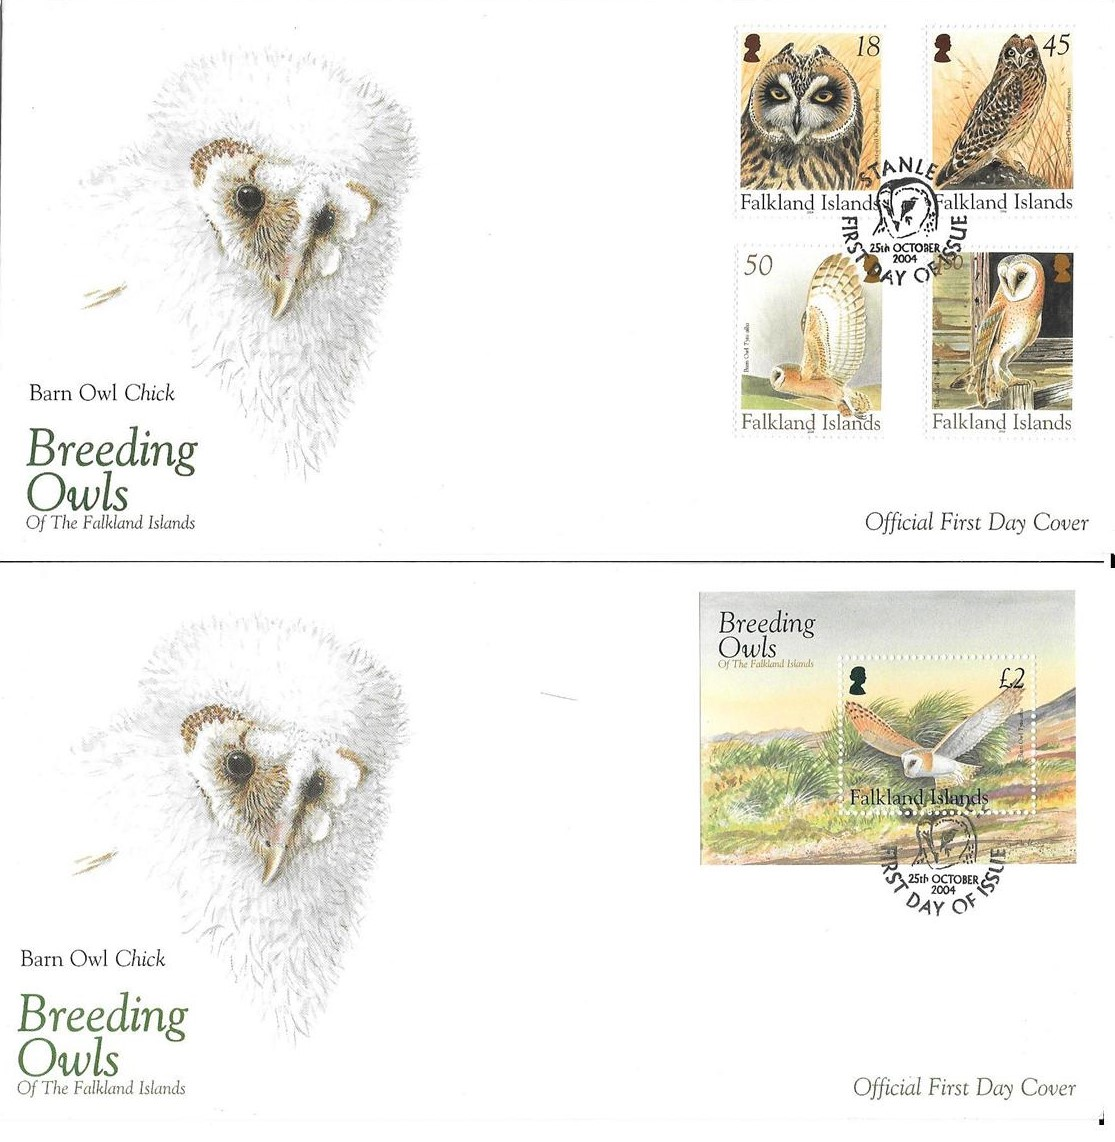 Breeding Owls